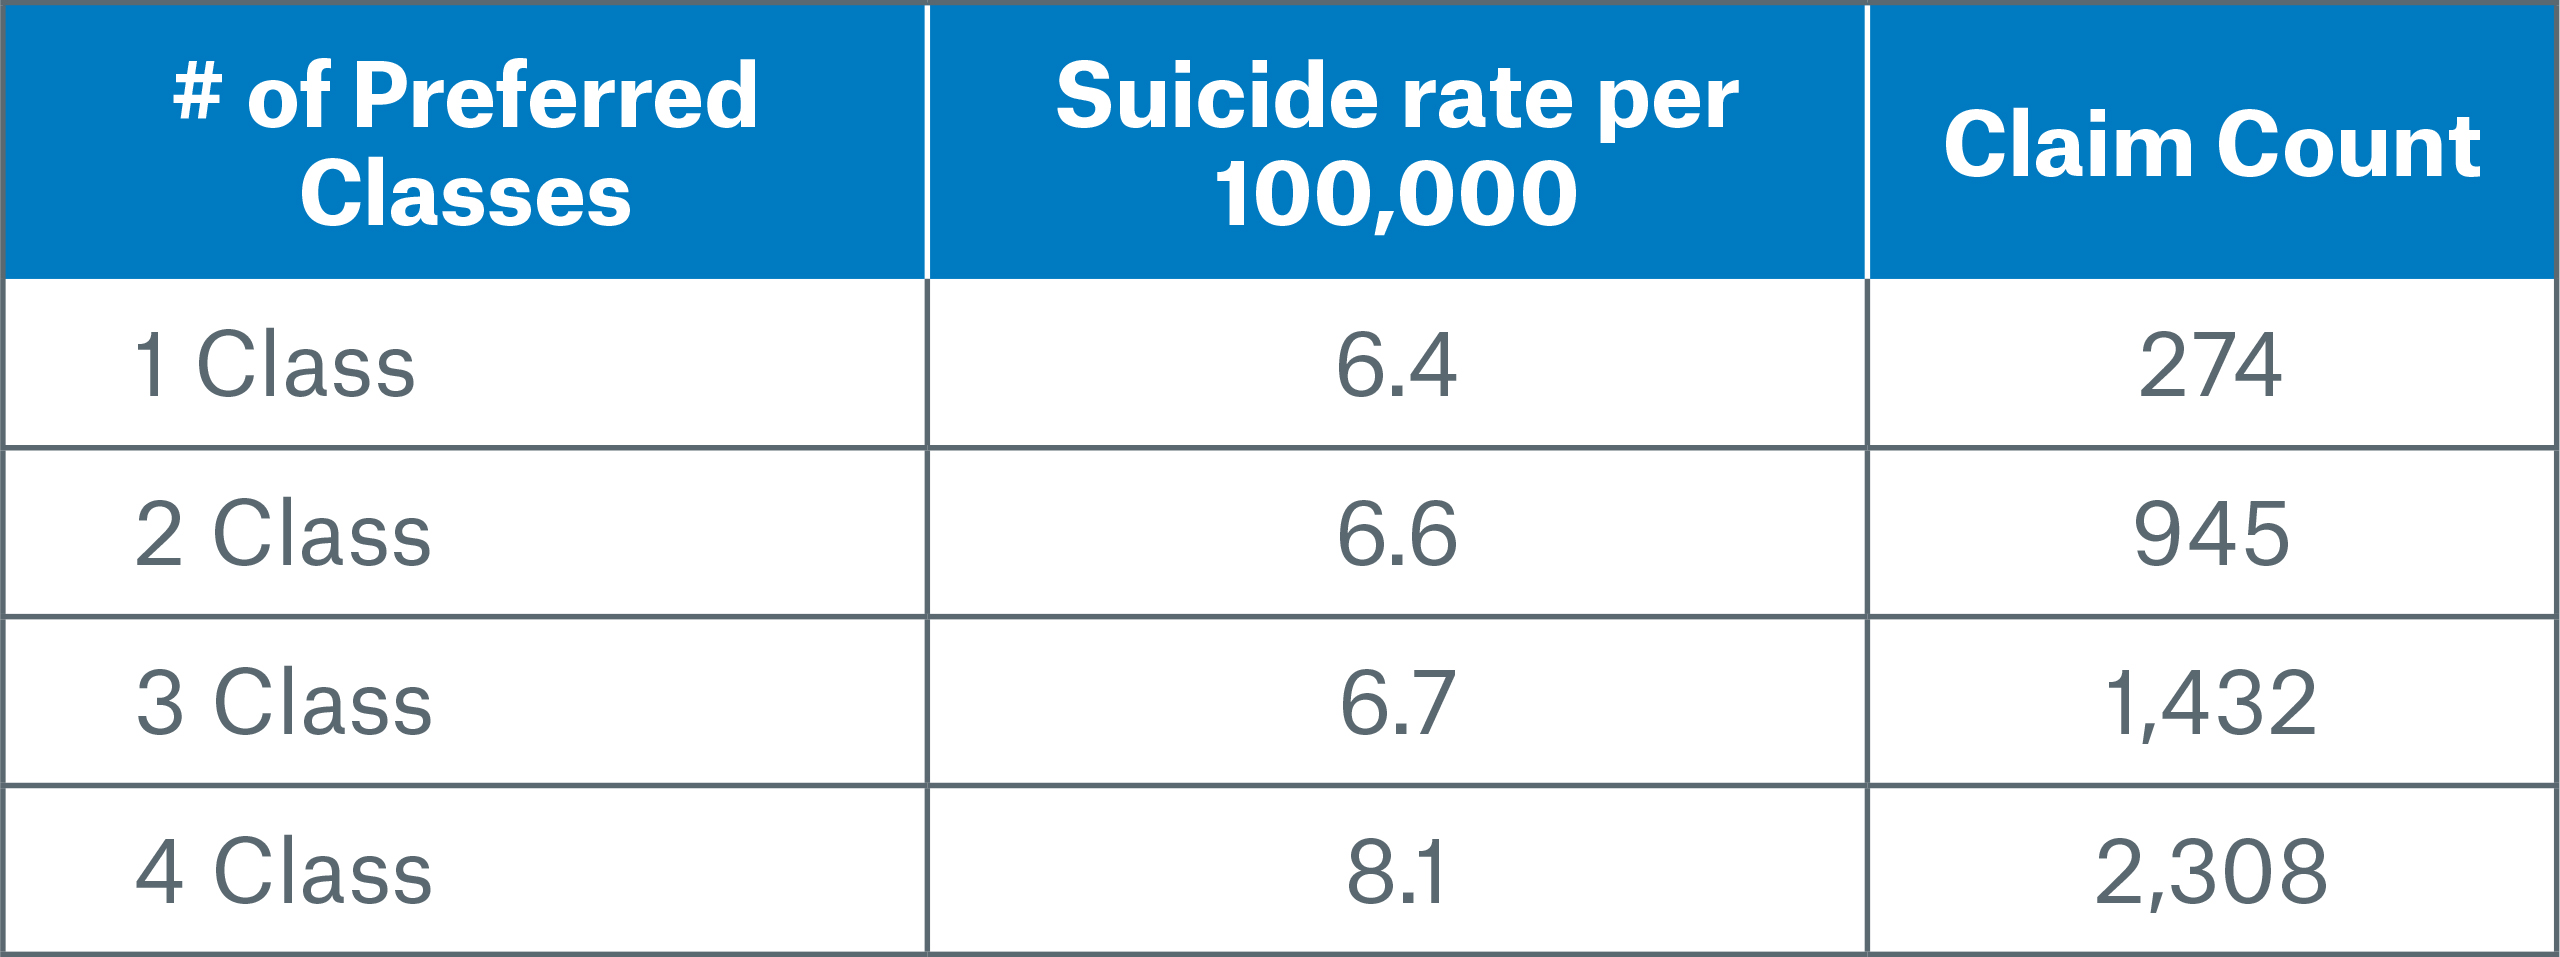 Title 3 Image Number of Preferred Classes Suicide Rate-Claim Count